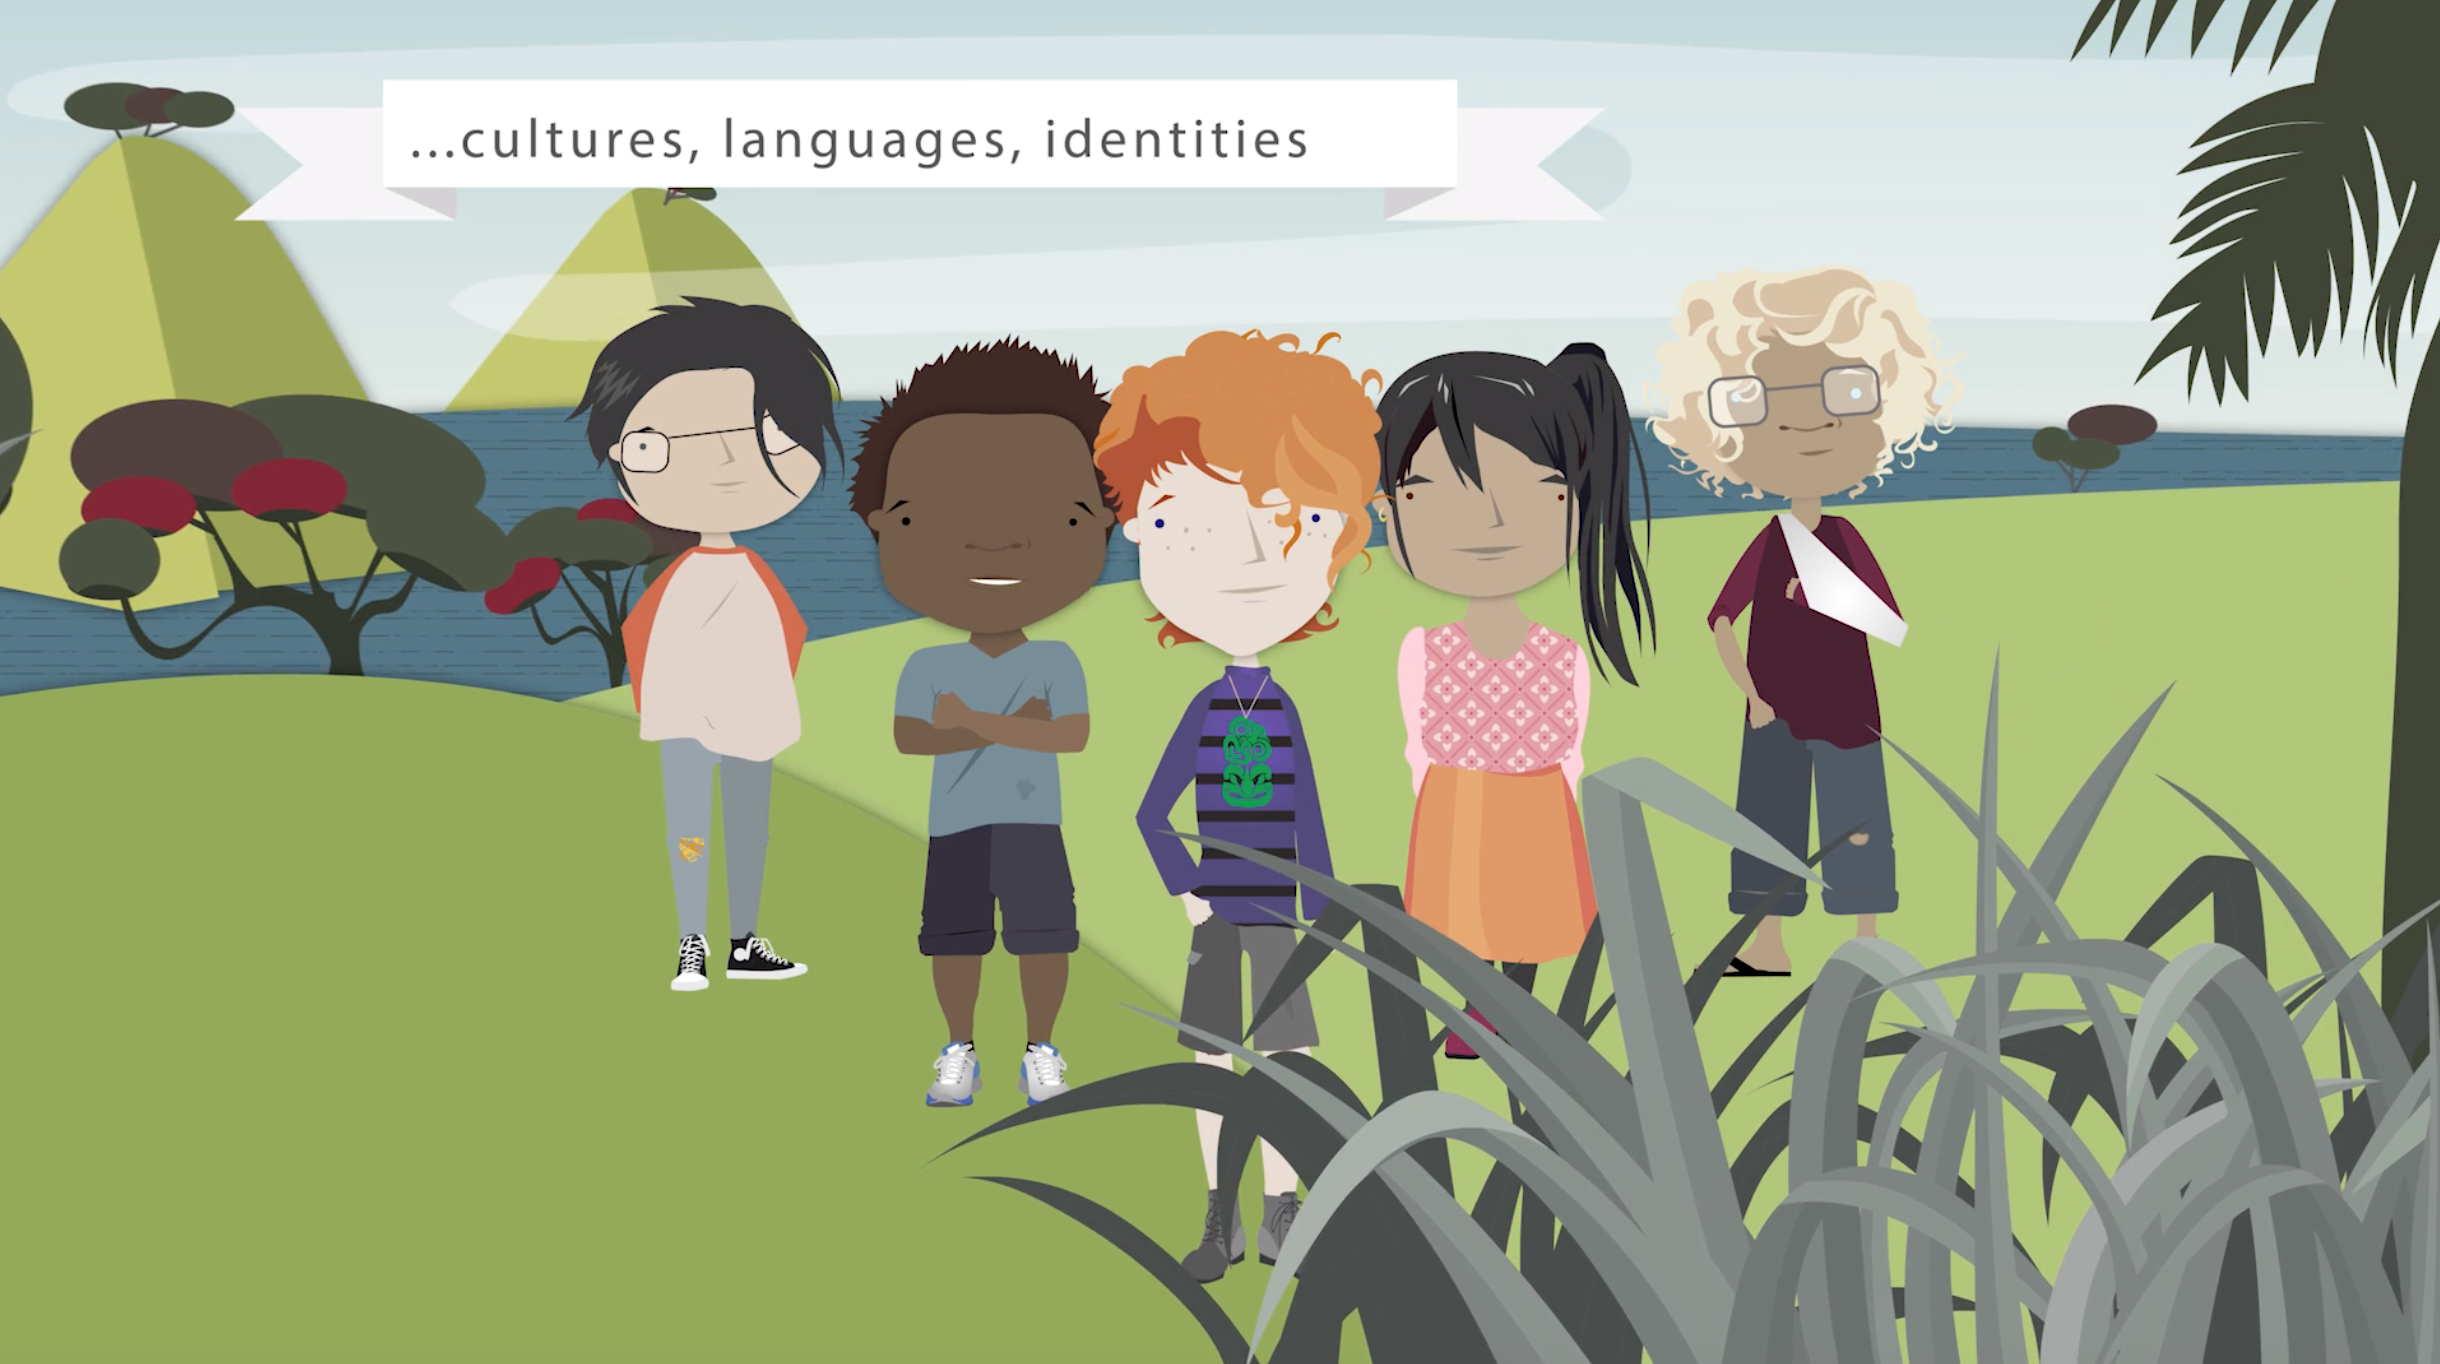 An image from the video showing students bringing their different backgrounds to school.